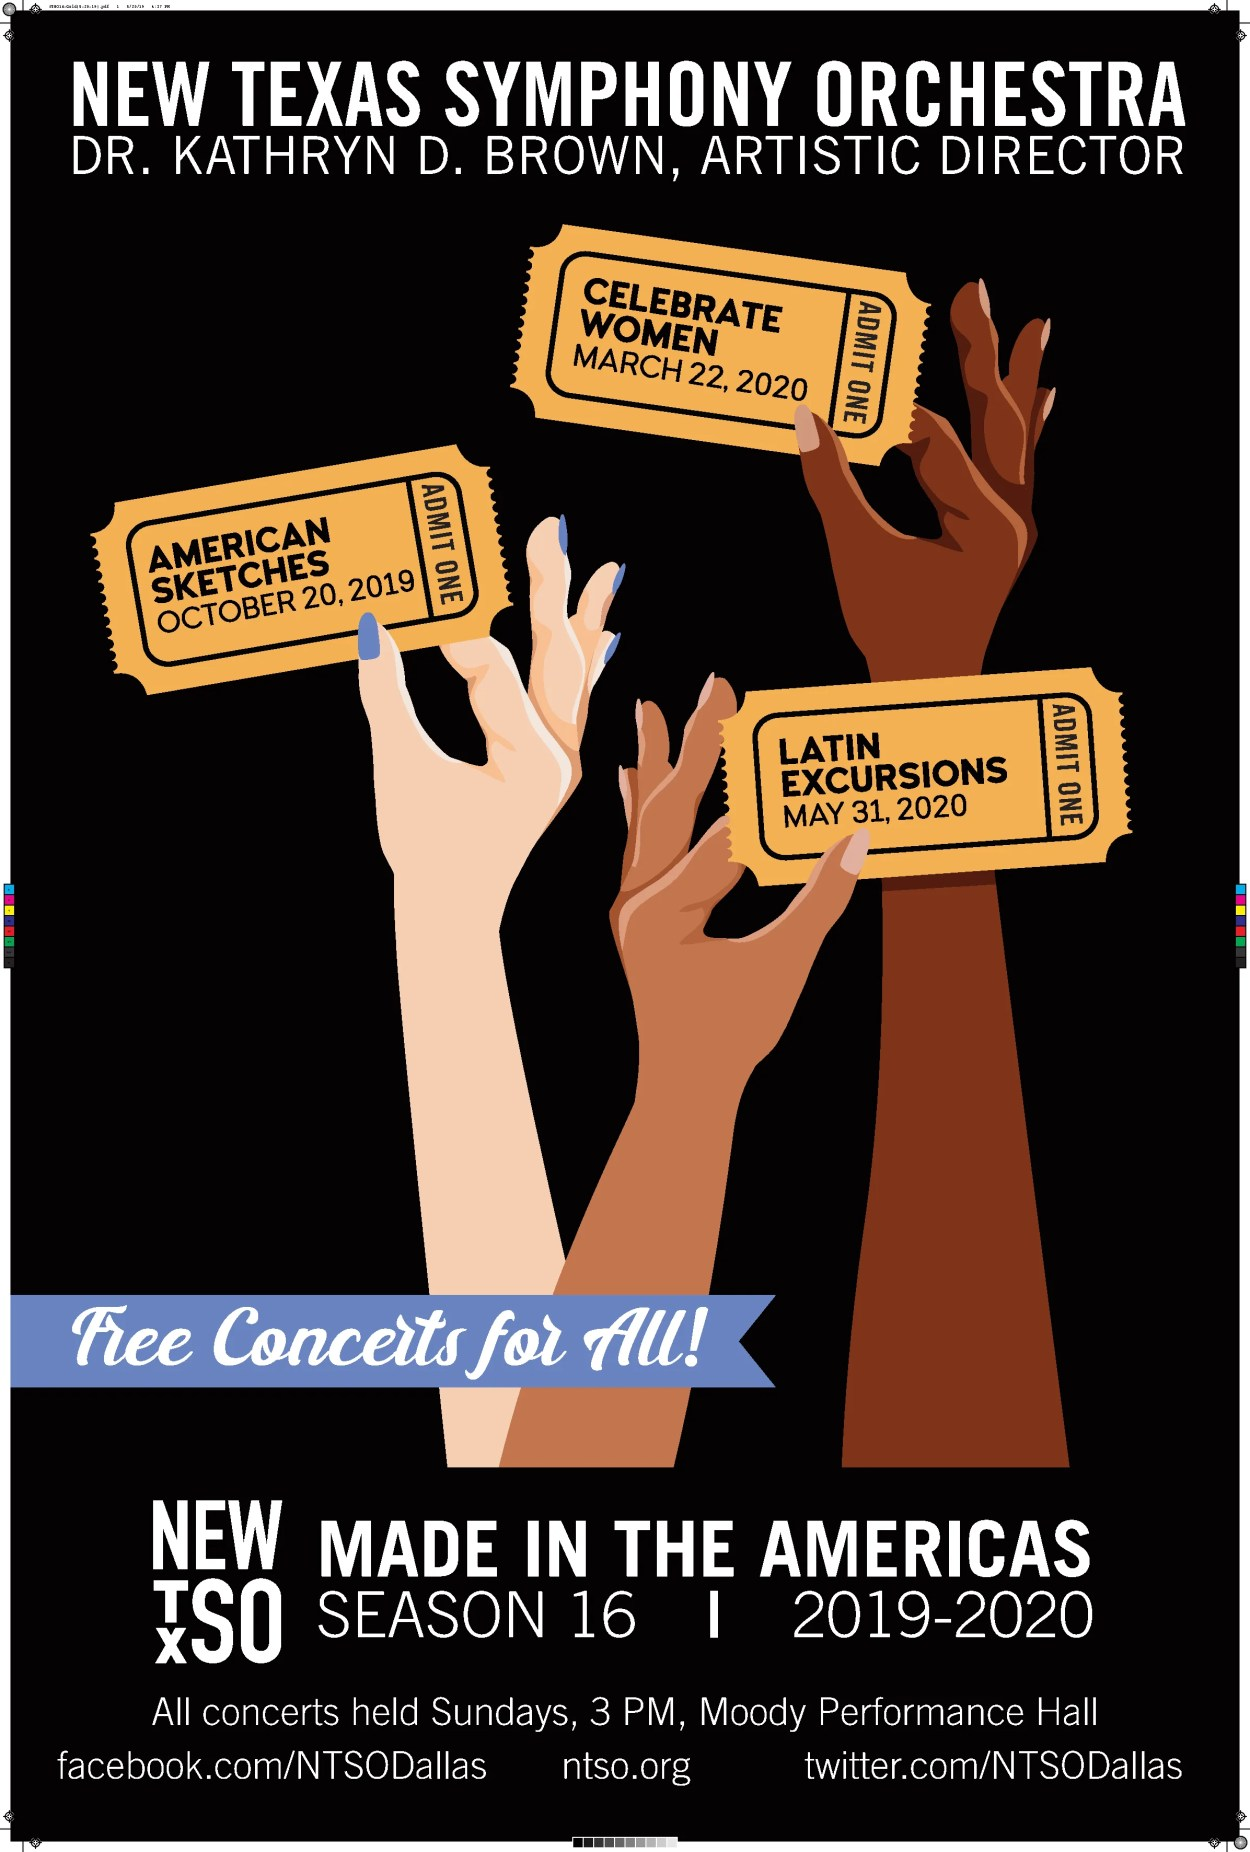 New Season! Made in the Americas.